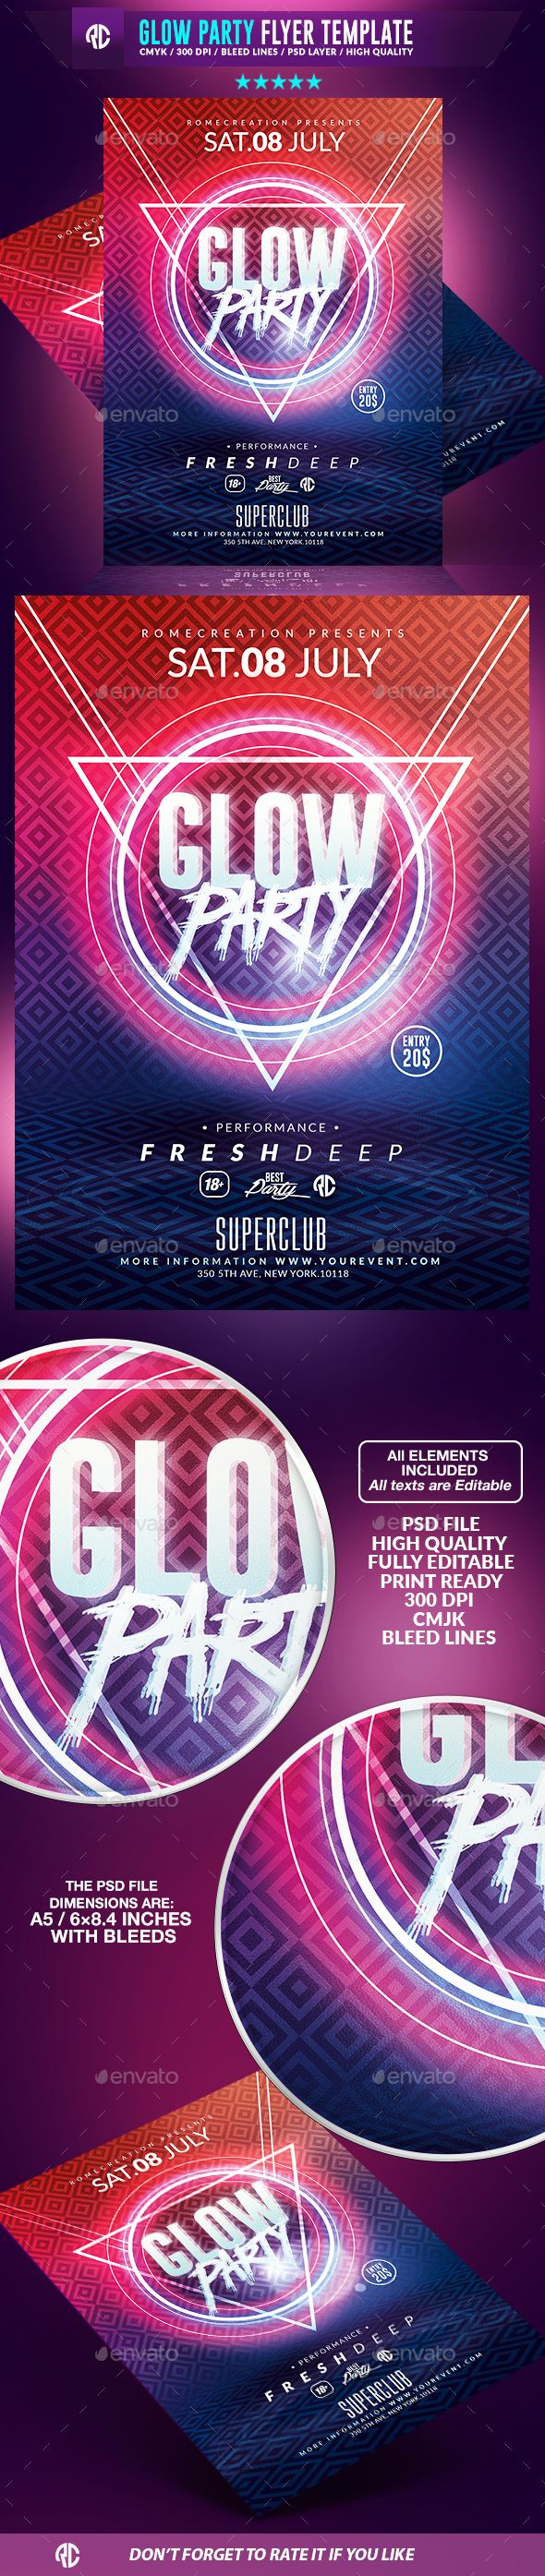 Glow Party | Psd Flyer Template available on #envatomarket  #templates #romecreation #minimal #deep #flyer #flyers #poster #fresh #party #geometry #event #glow #glowinthedark #sounds #psd #market #graphicriver